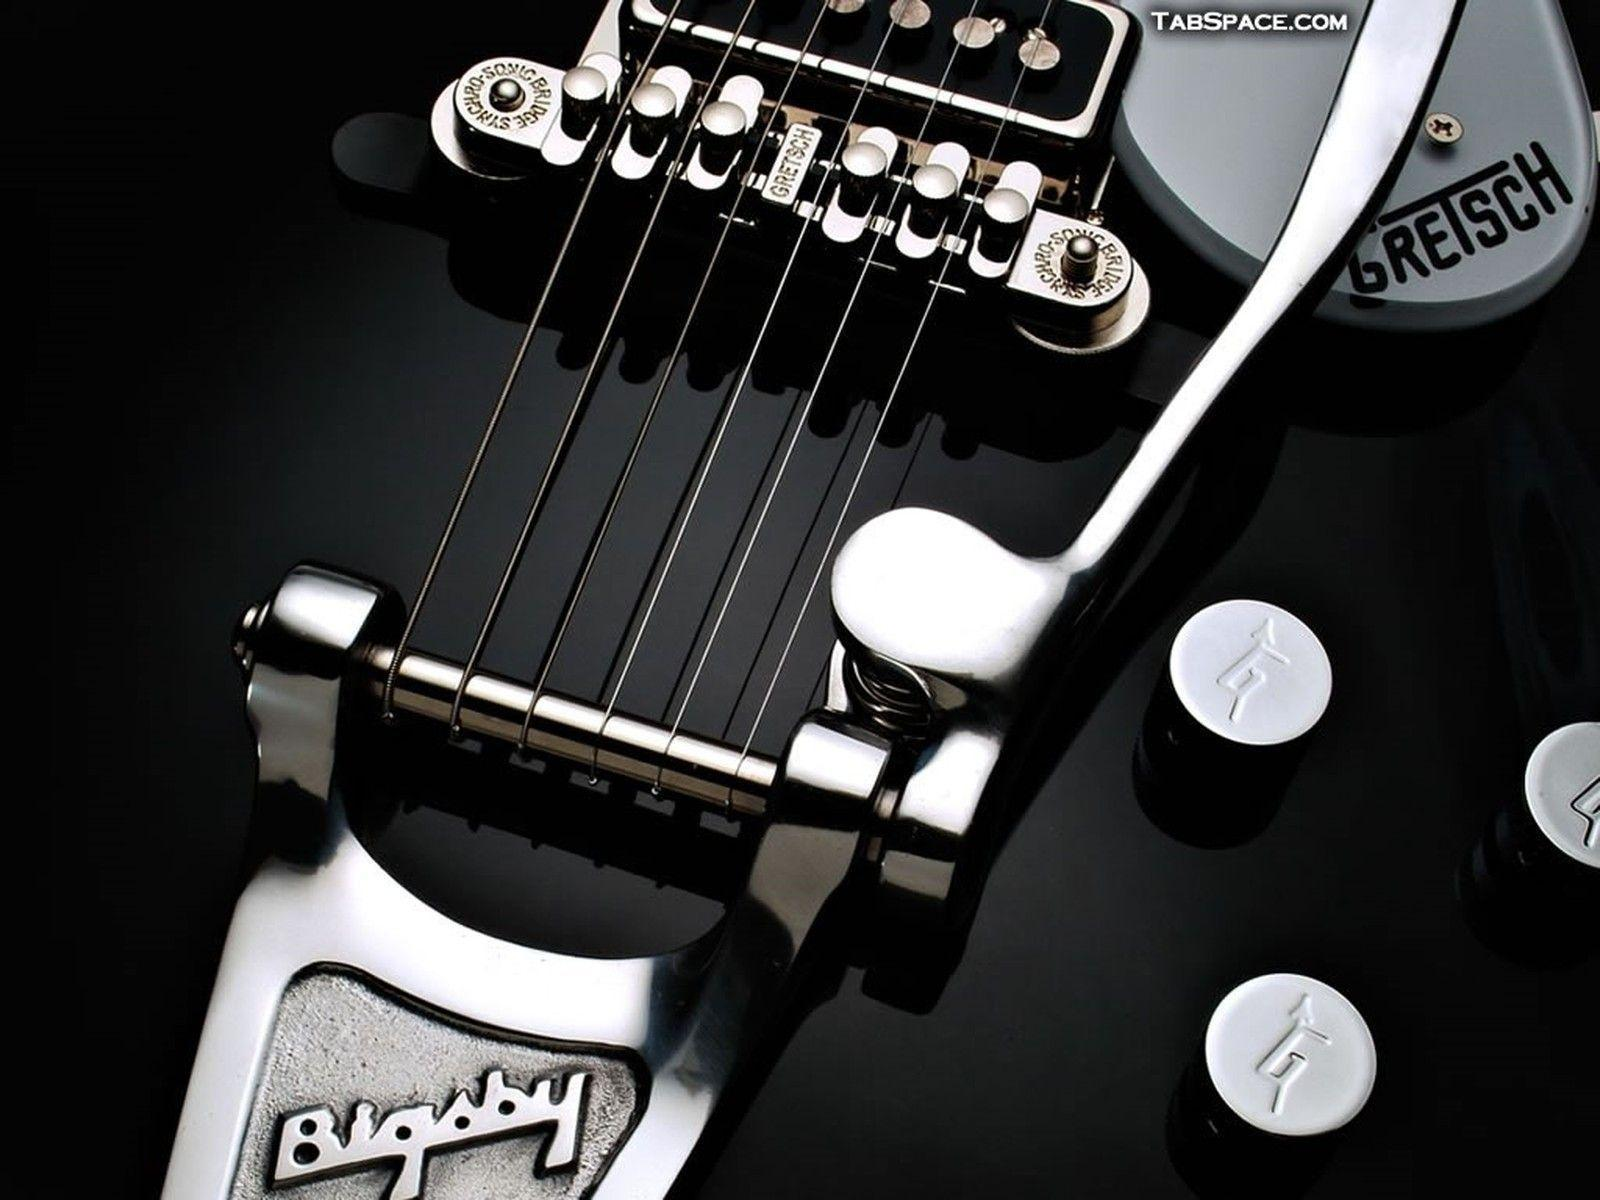 Cool Guitar Wallpapers 9254 Hd Wallpapers in Music - Imagesci.com